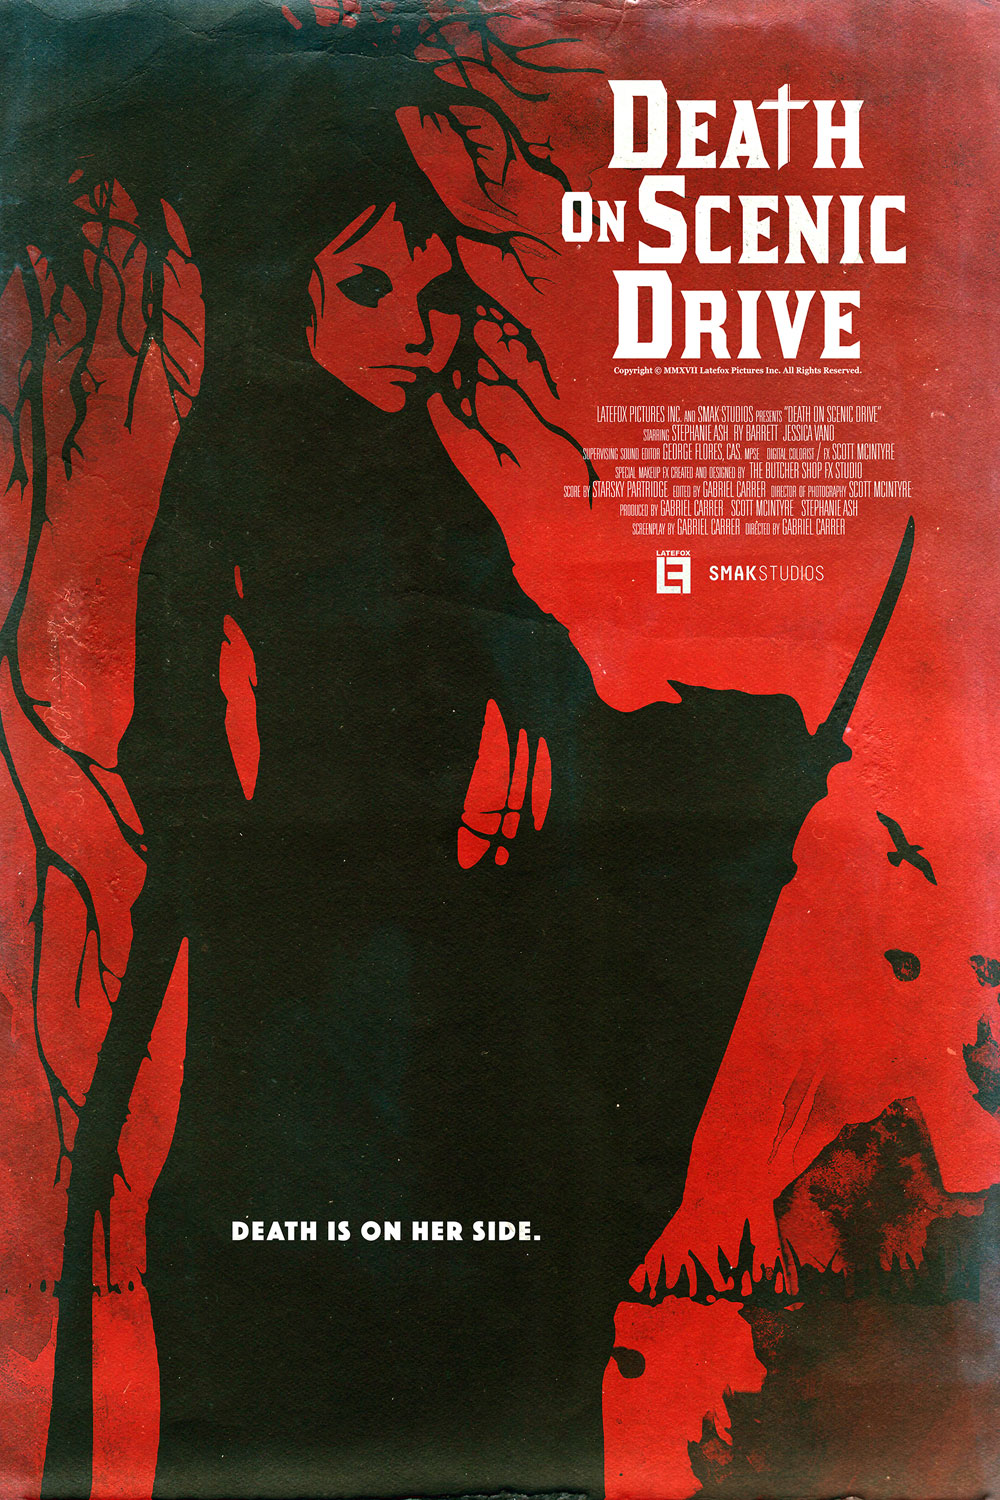 DEATH 24X36 02 - Exclusive Early Look at Three New Death on Scenic Drive Posters